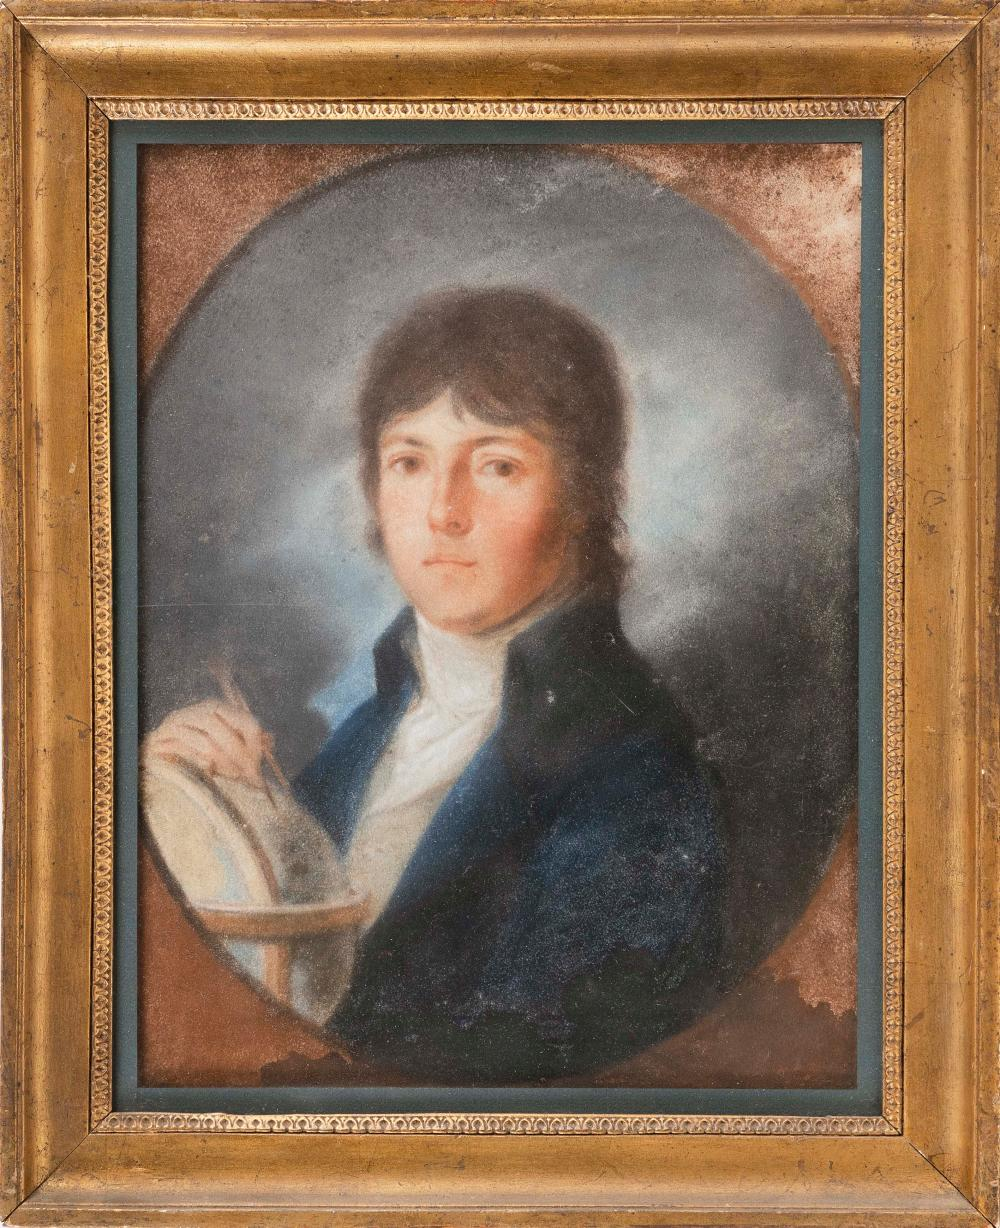 """PASTEL PORTRAIT OF A YOUNG MAN 19th Century Pastel on paper, 10.5"""" x 13.5"""". Framed 17"""" x 13.75""""."""